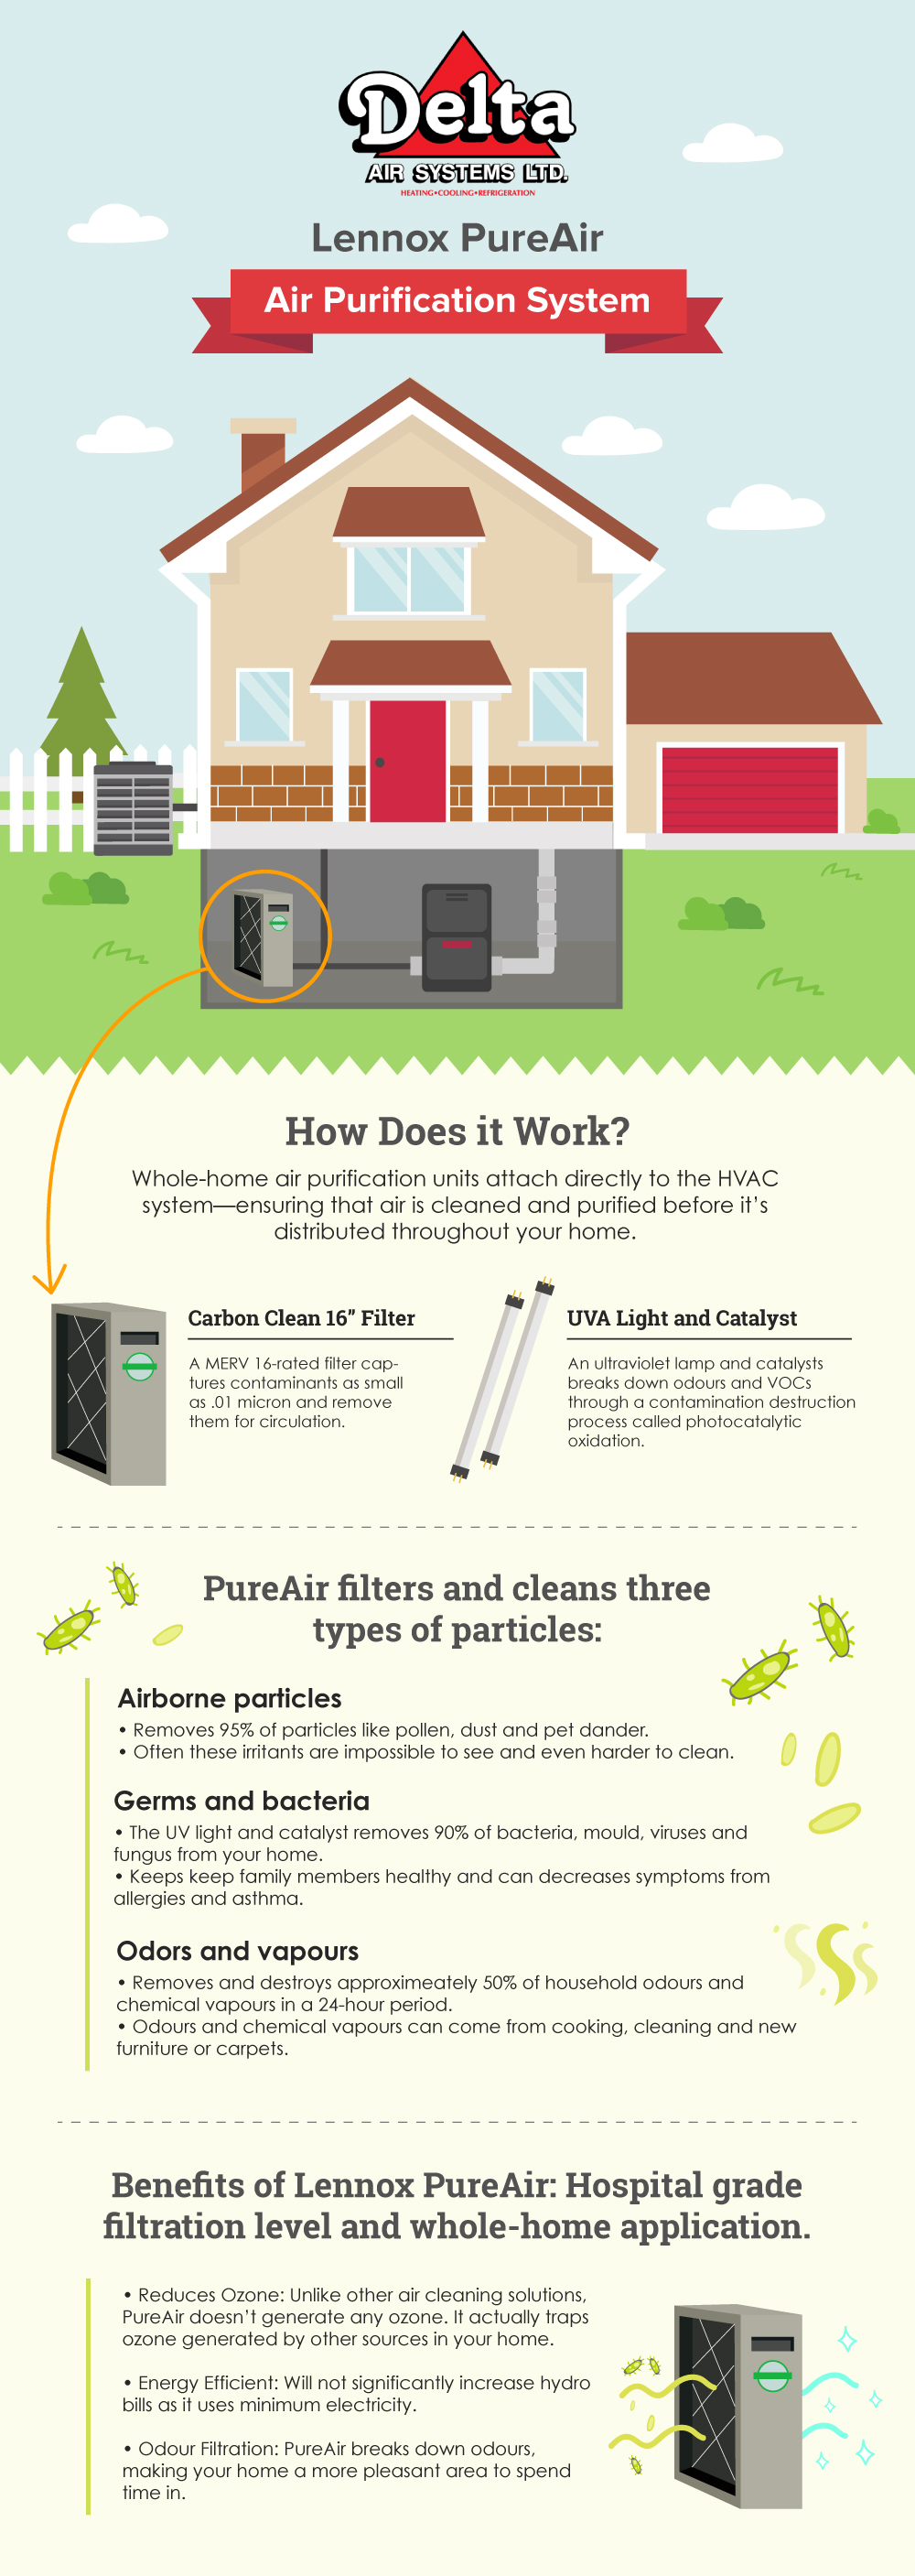 delta-airfilter-infographic Lennox PureAir Air Purification System